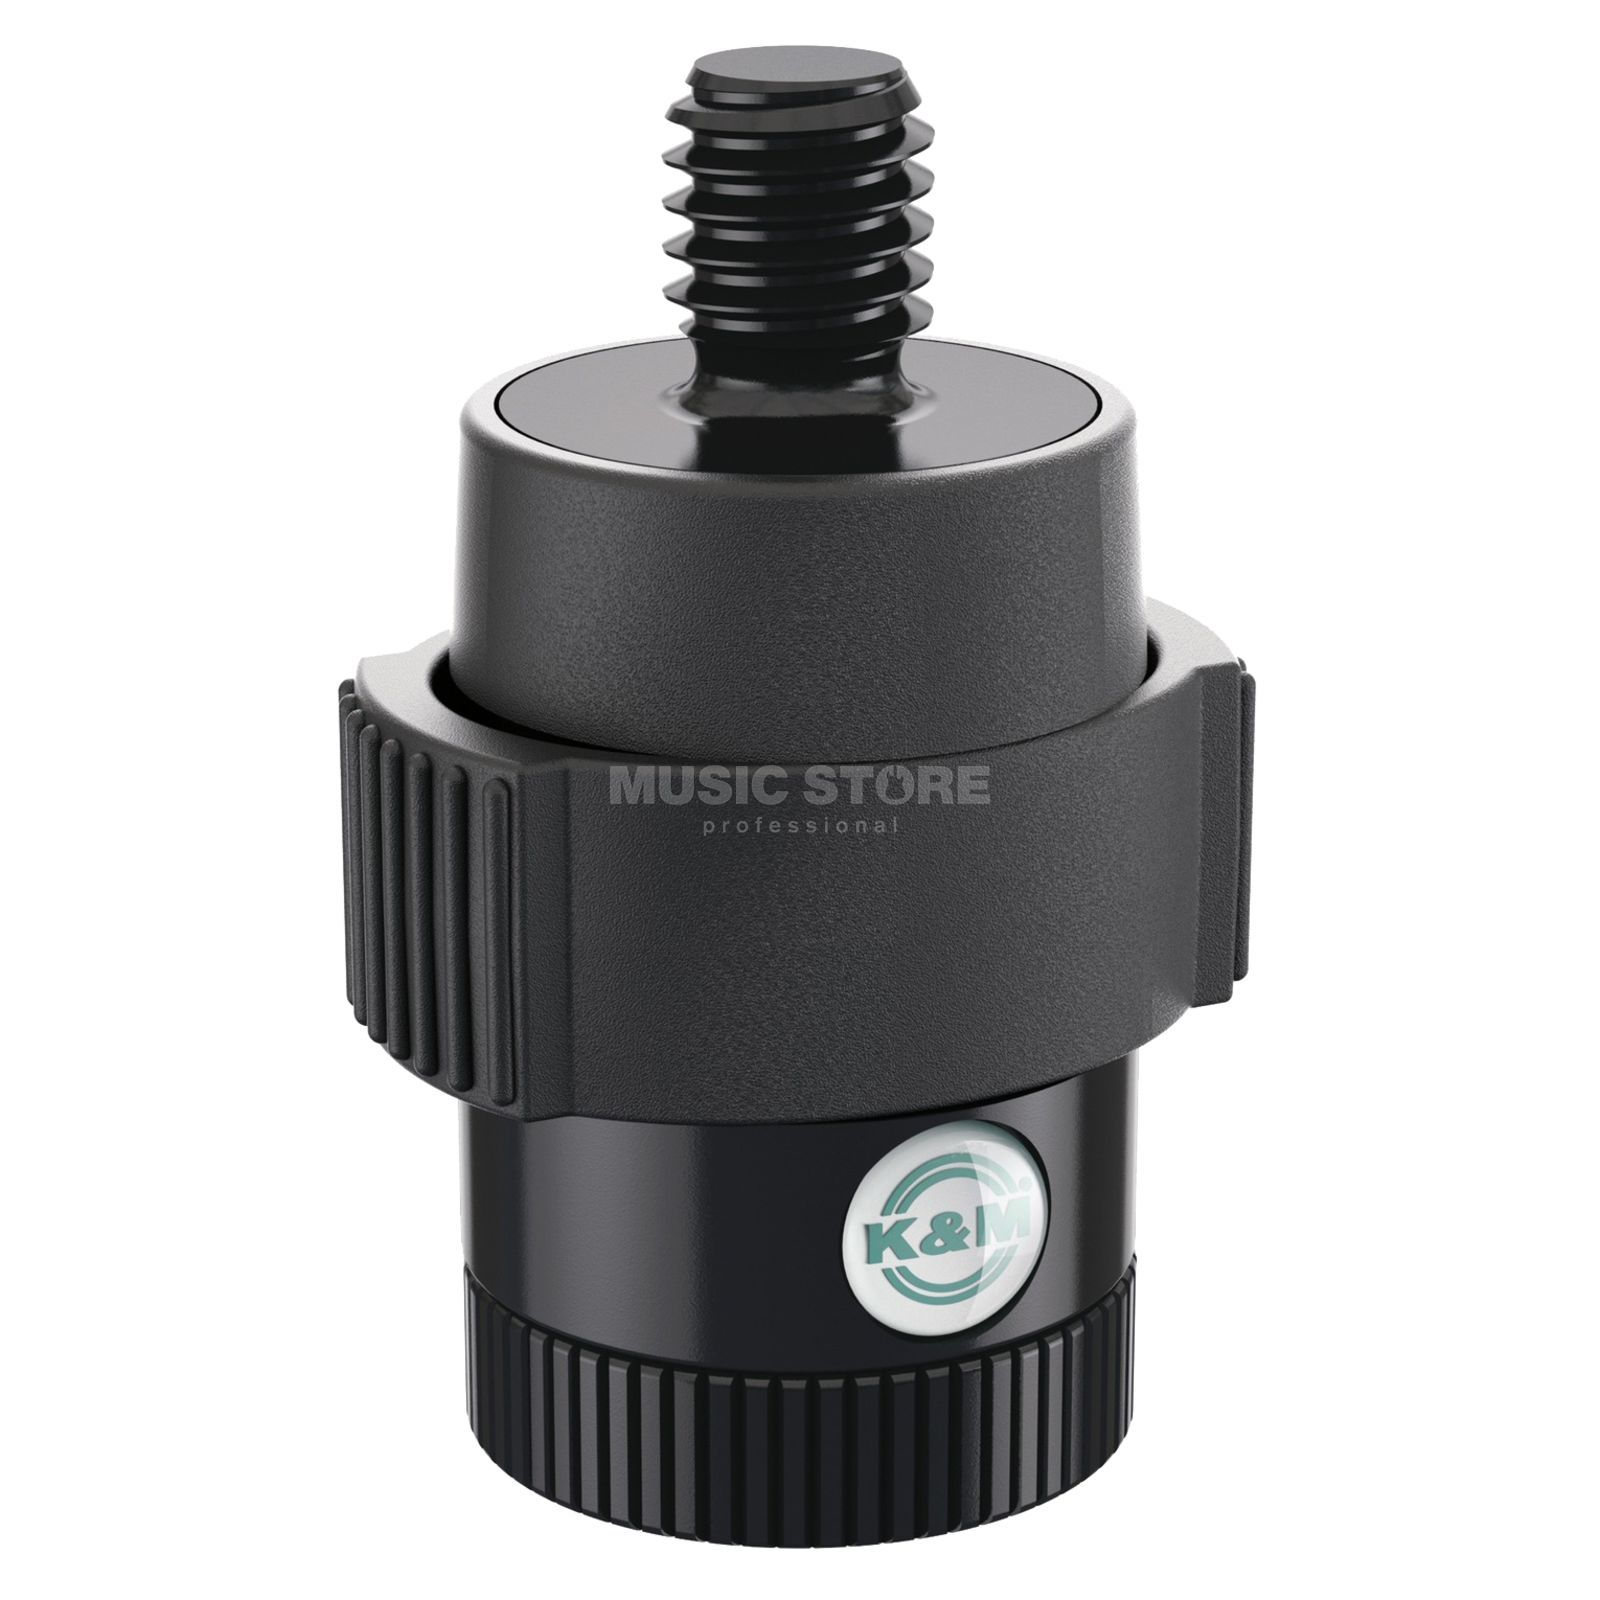 König & Meyer 23910 Quick-Release Adapter for Microphones black Produktbillede